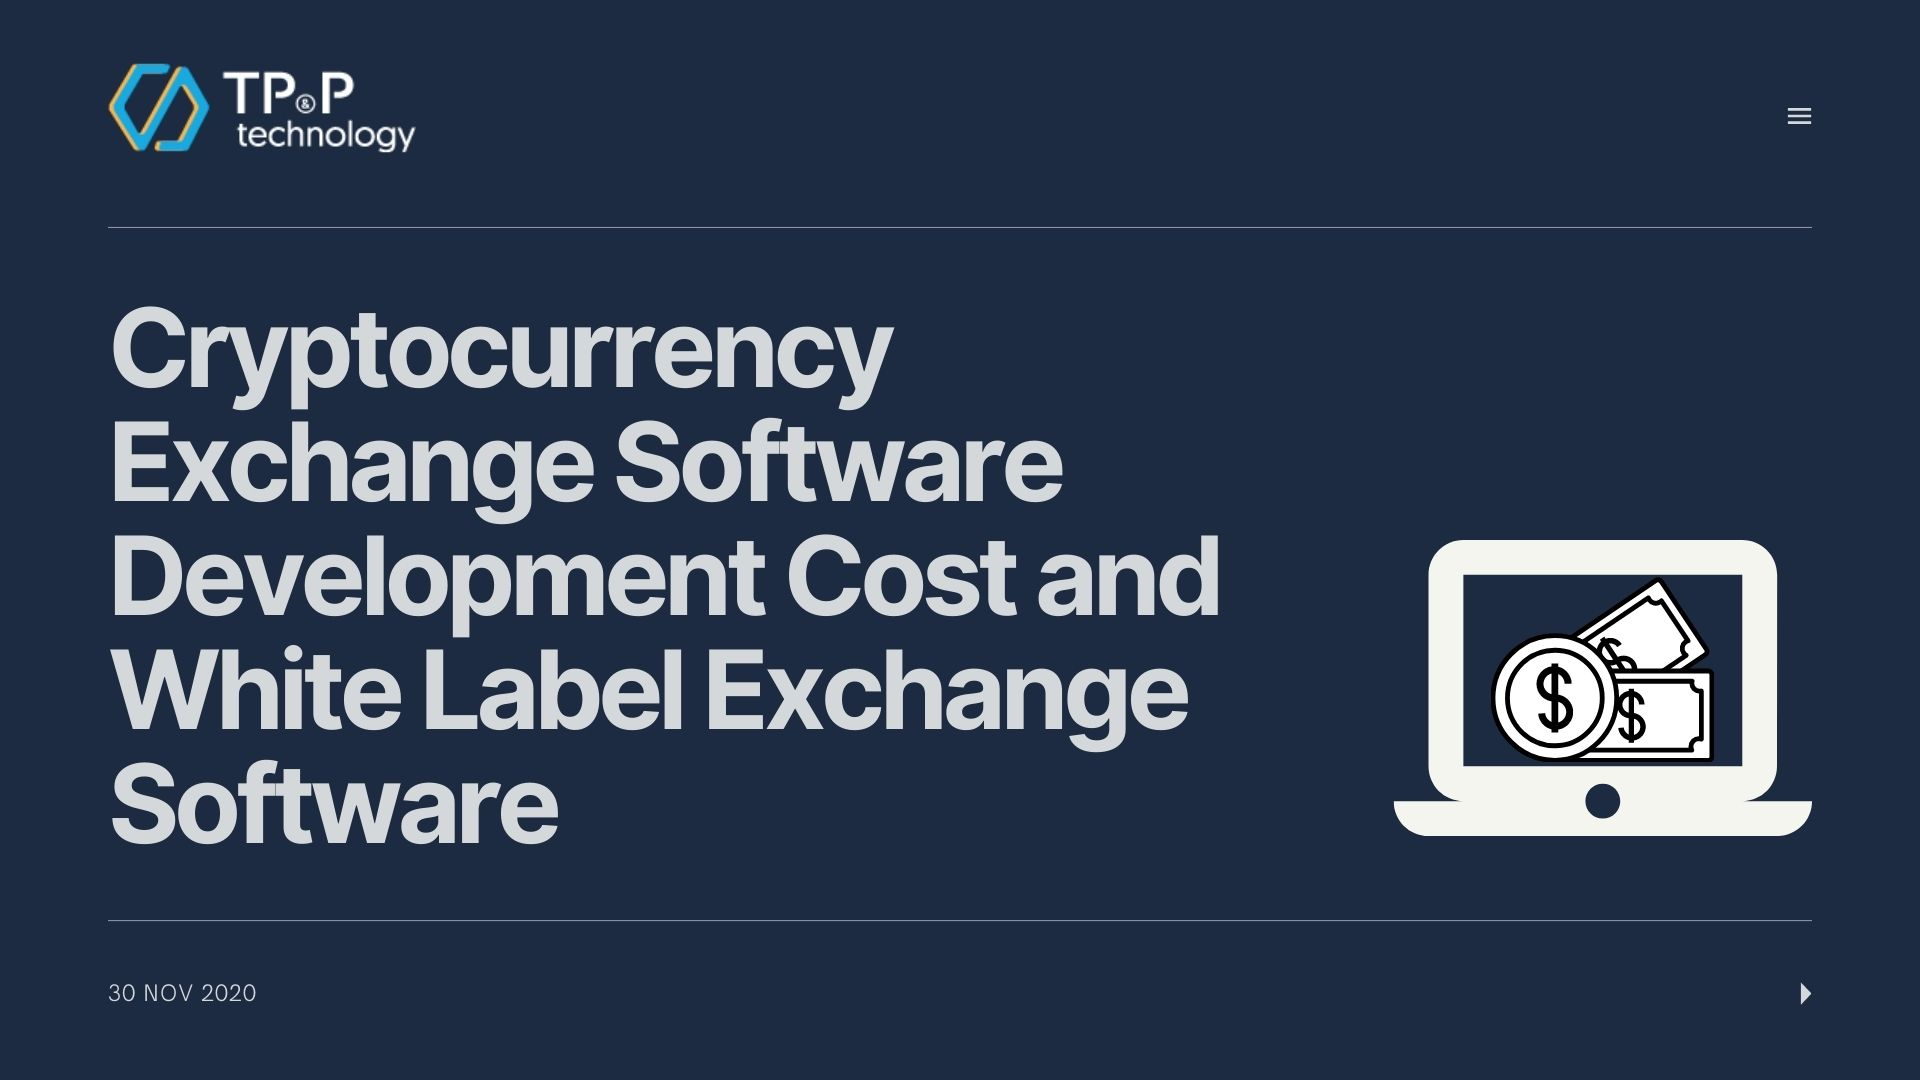 Cryptocurrency Exchange Software Development Cost and White Label Exchange Company